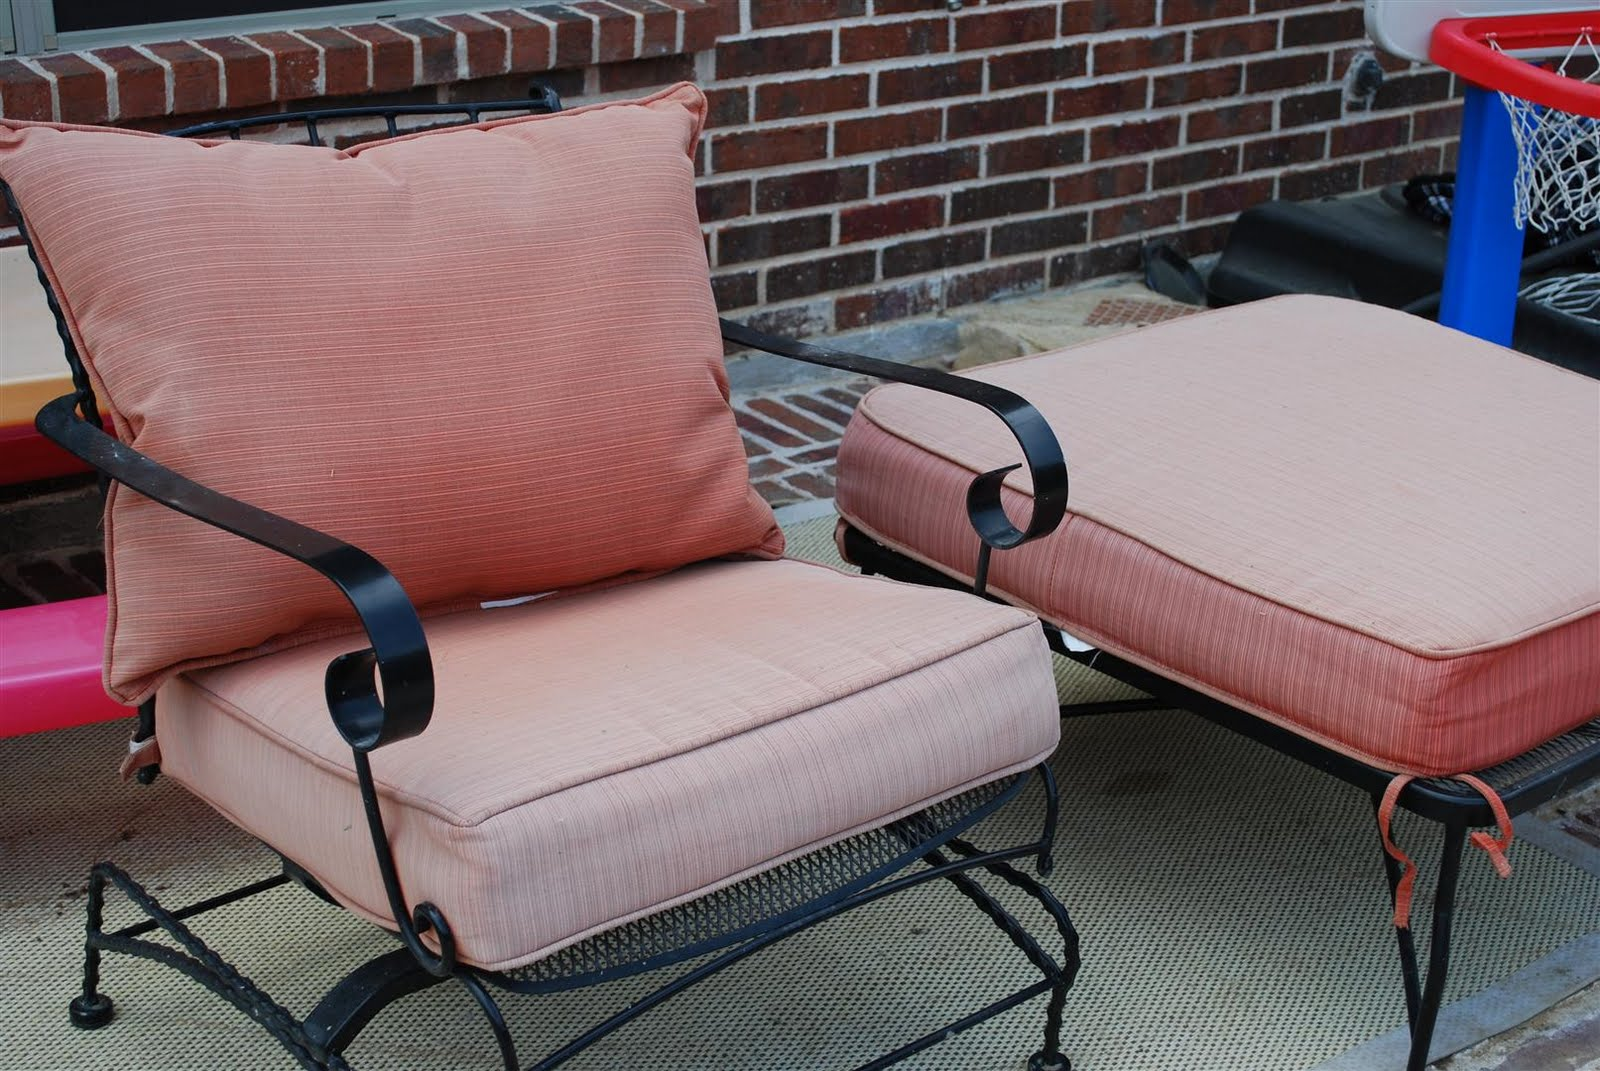 redo sling patio chairs used stressless chair reupholster modern home interior ideas craftyc0rn3r furniture reupholstering rh blogspot com